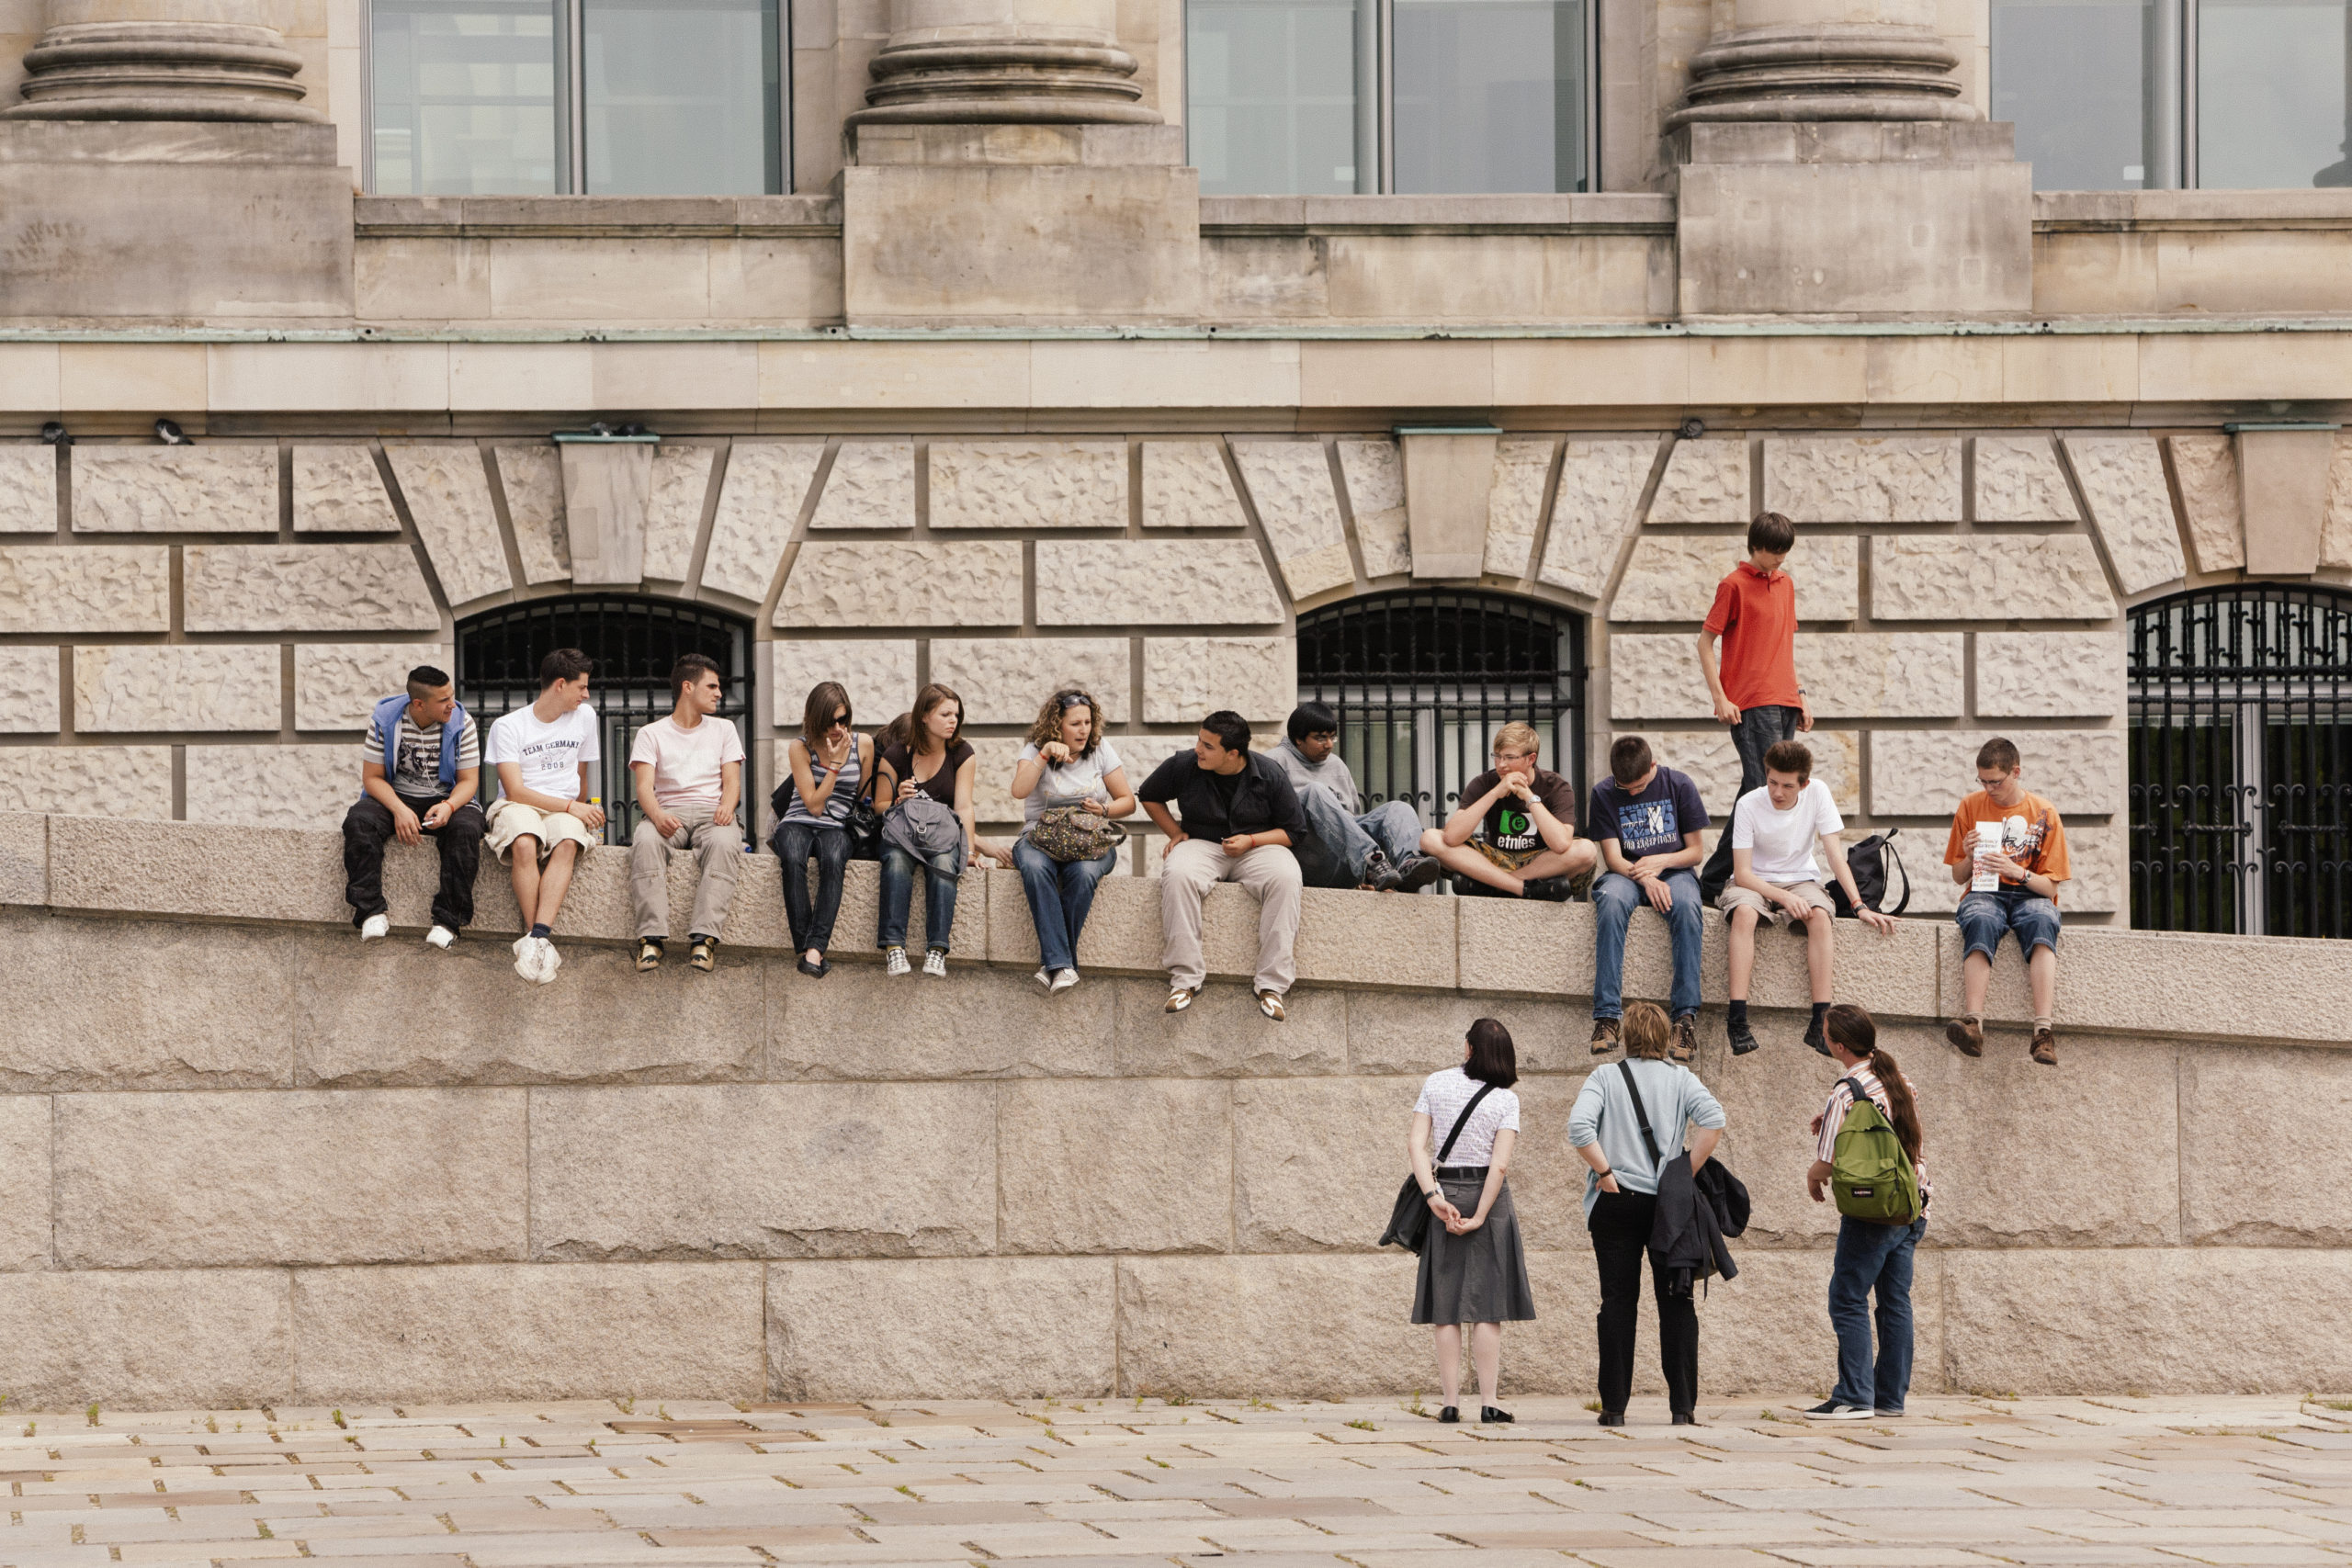 A tour group sitting on the steps at the Reichstag in Berlin, Germany